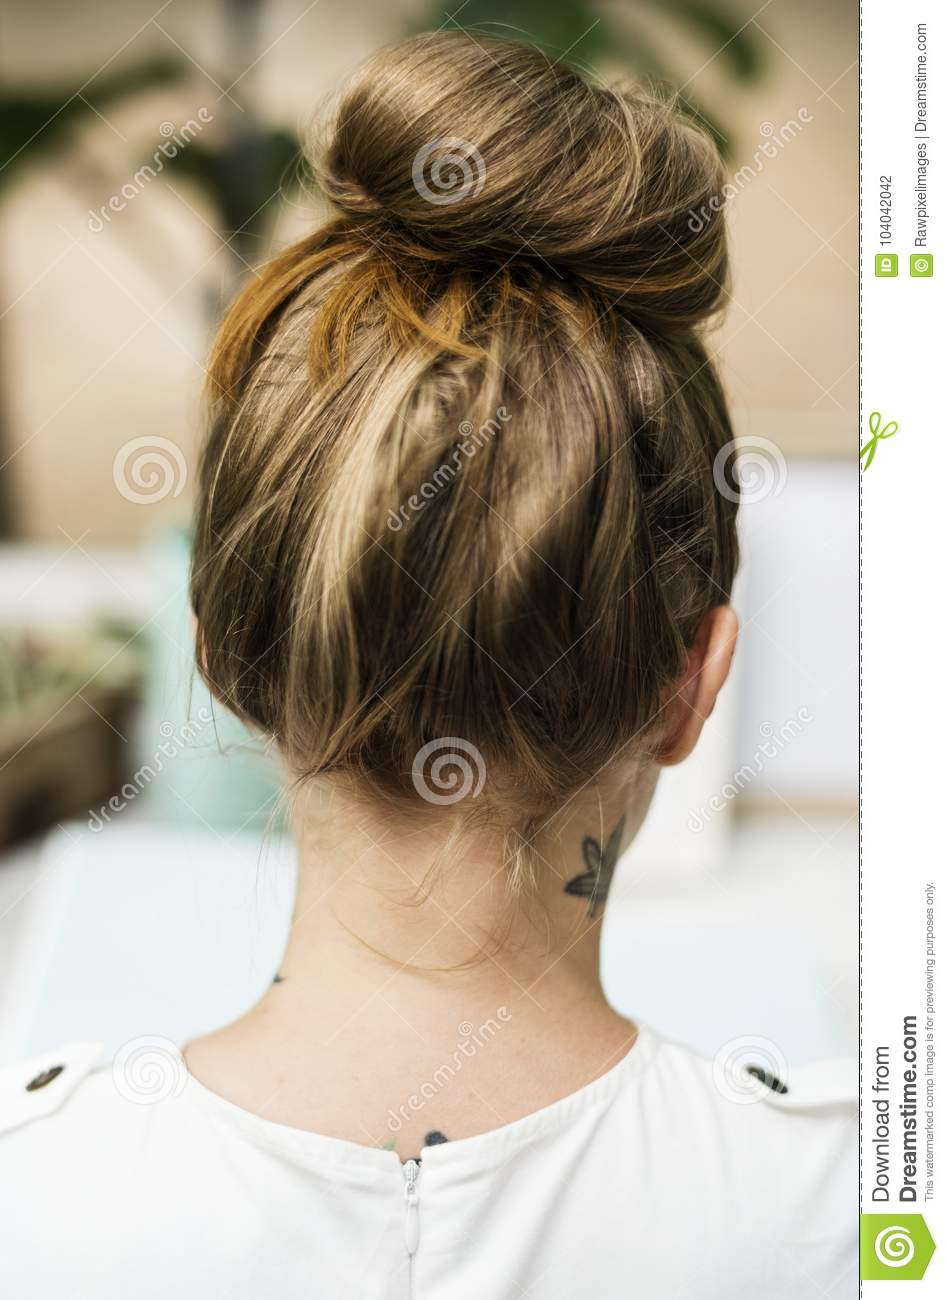 Rear view of woman with tattoo at her neck